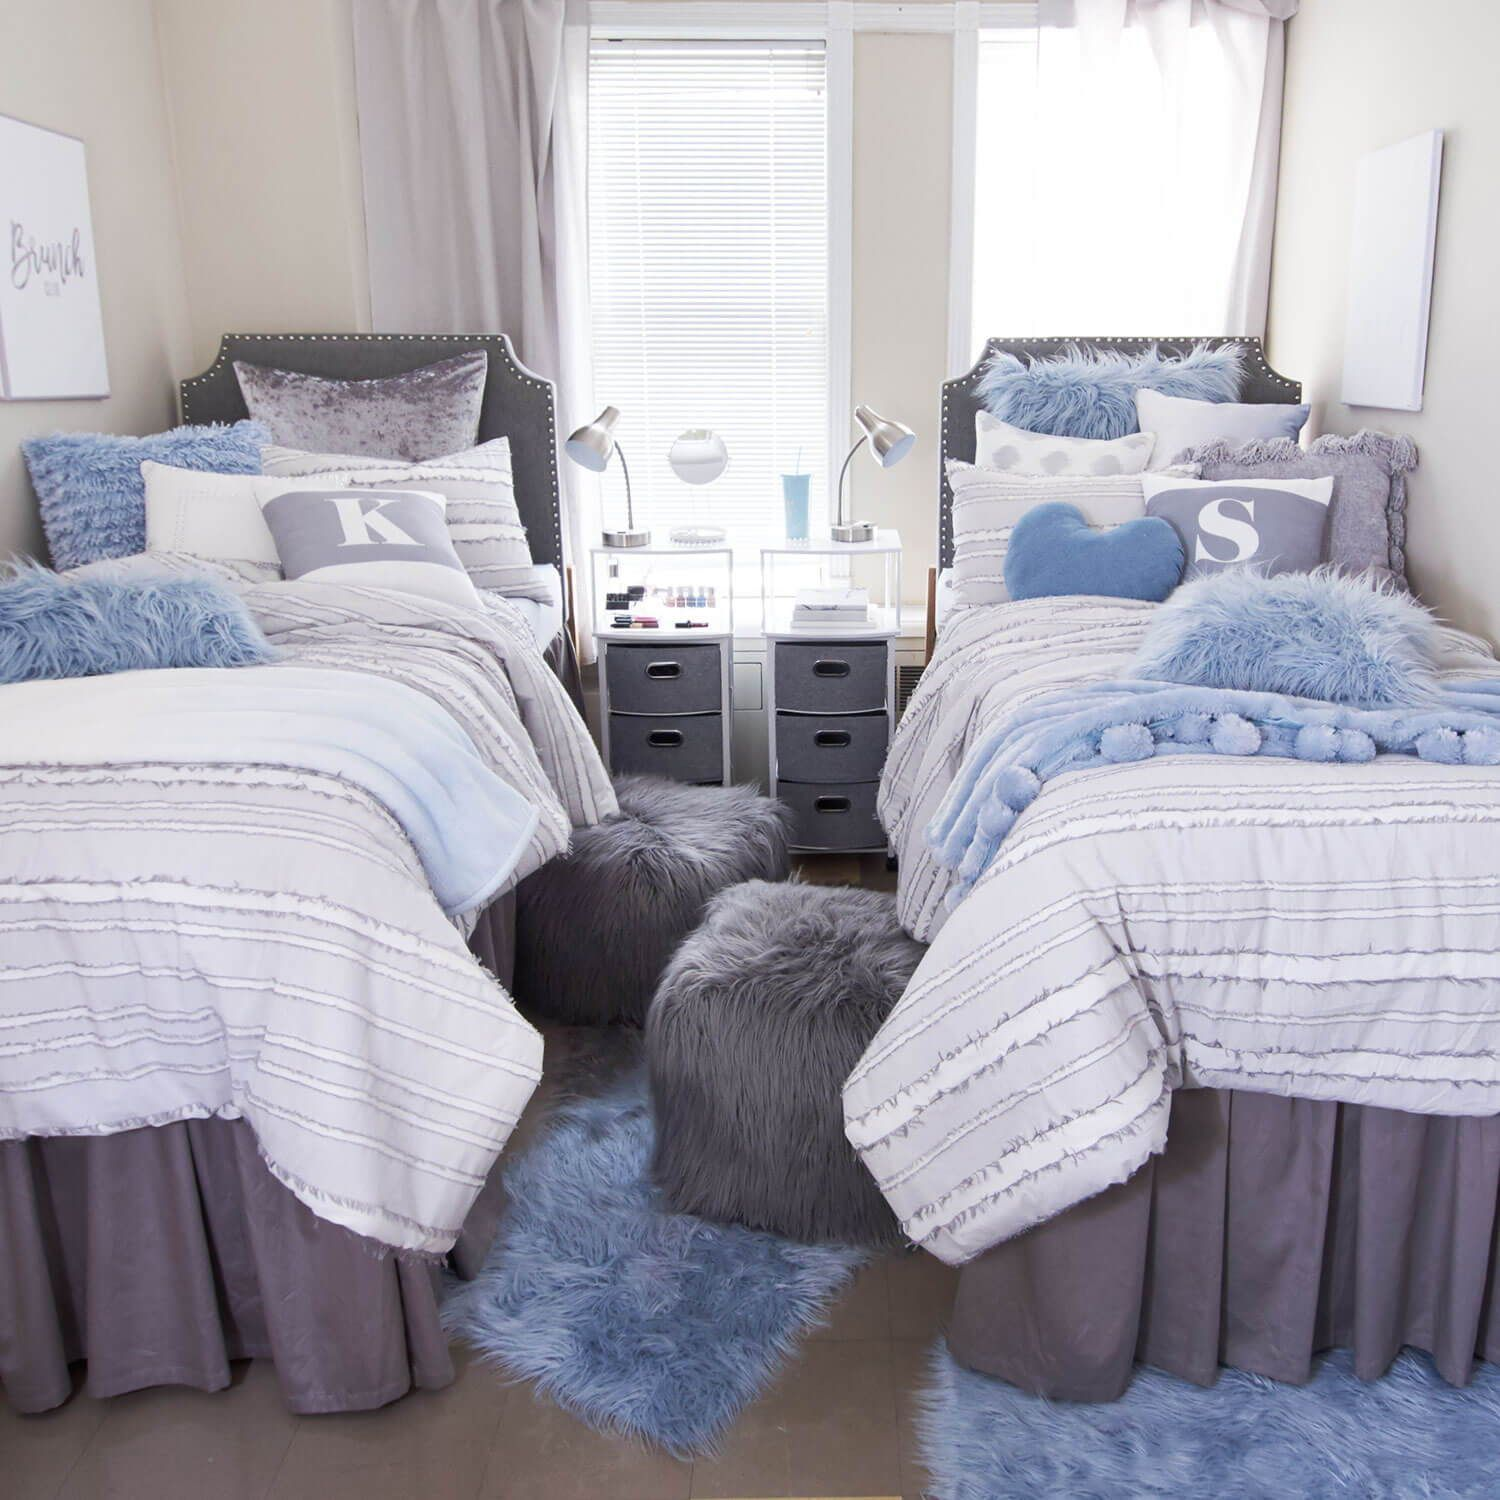 Living In An Uptown World This Glamorous Dorm Room Is Perfect For The Girl Who Appreciates Classic St Elegant Dorm Room Dorm Room Colors College Bedroom Decor